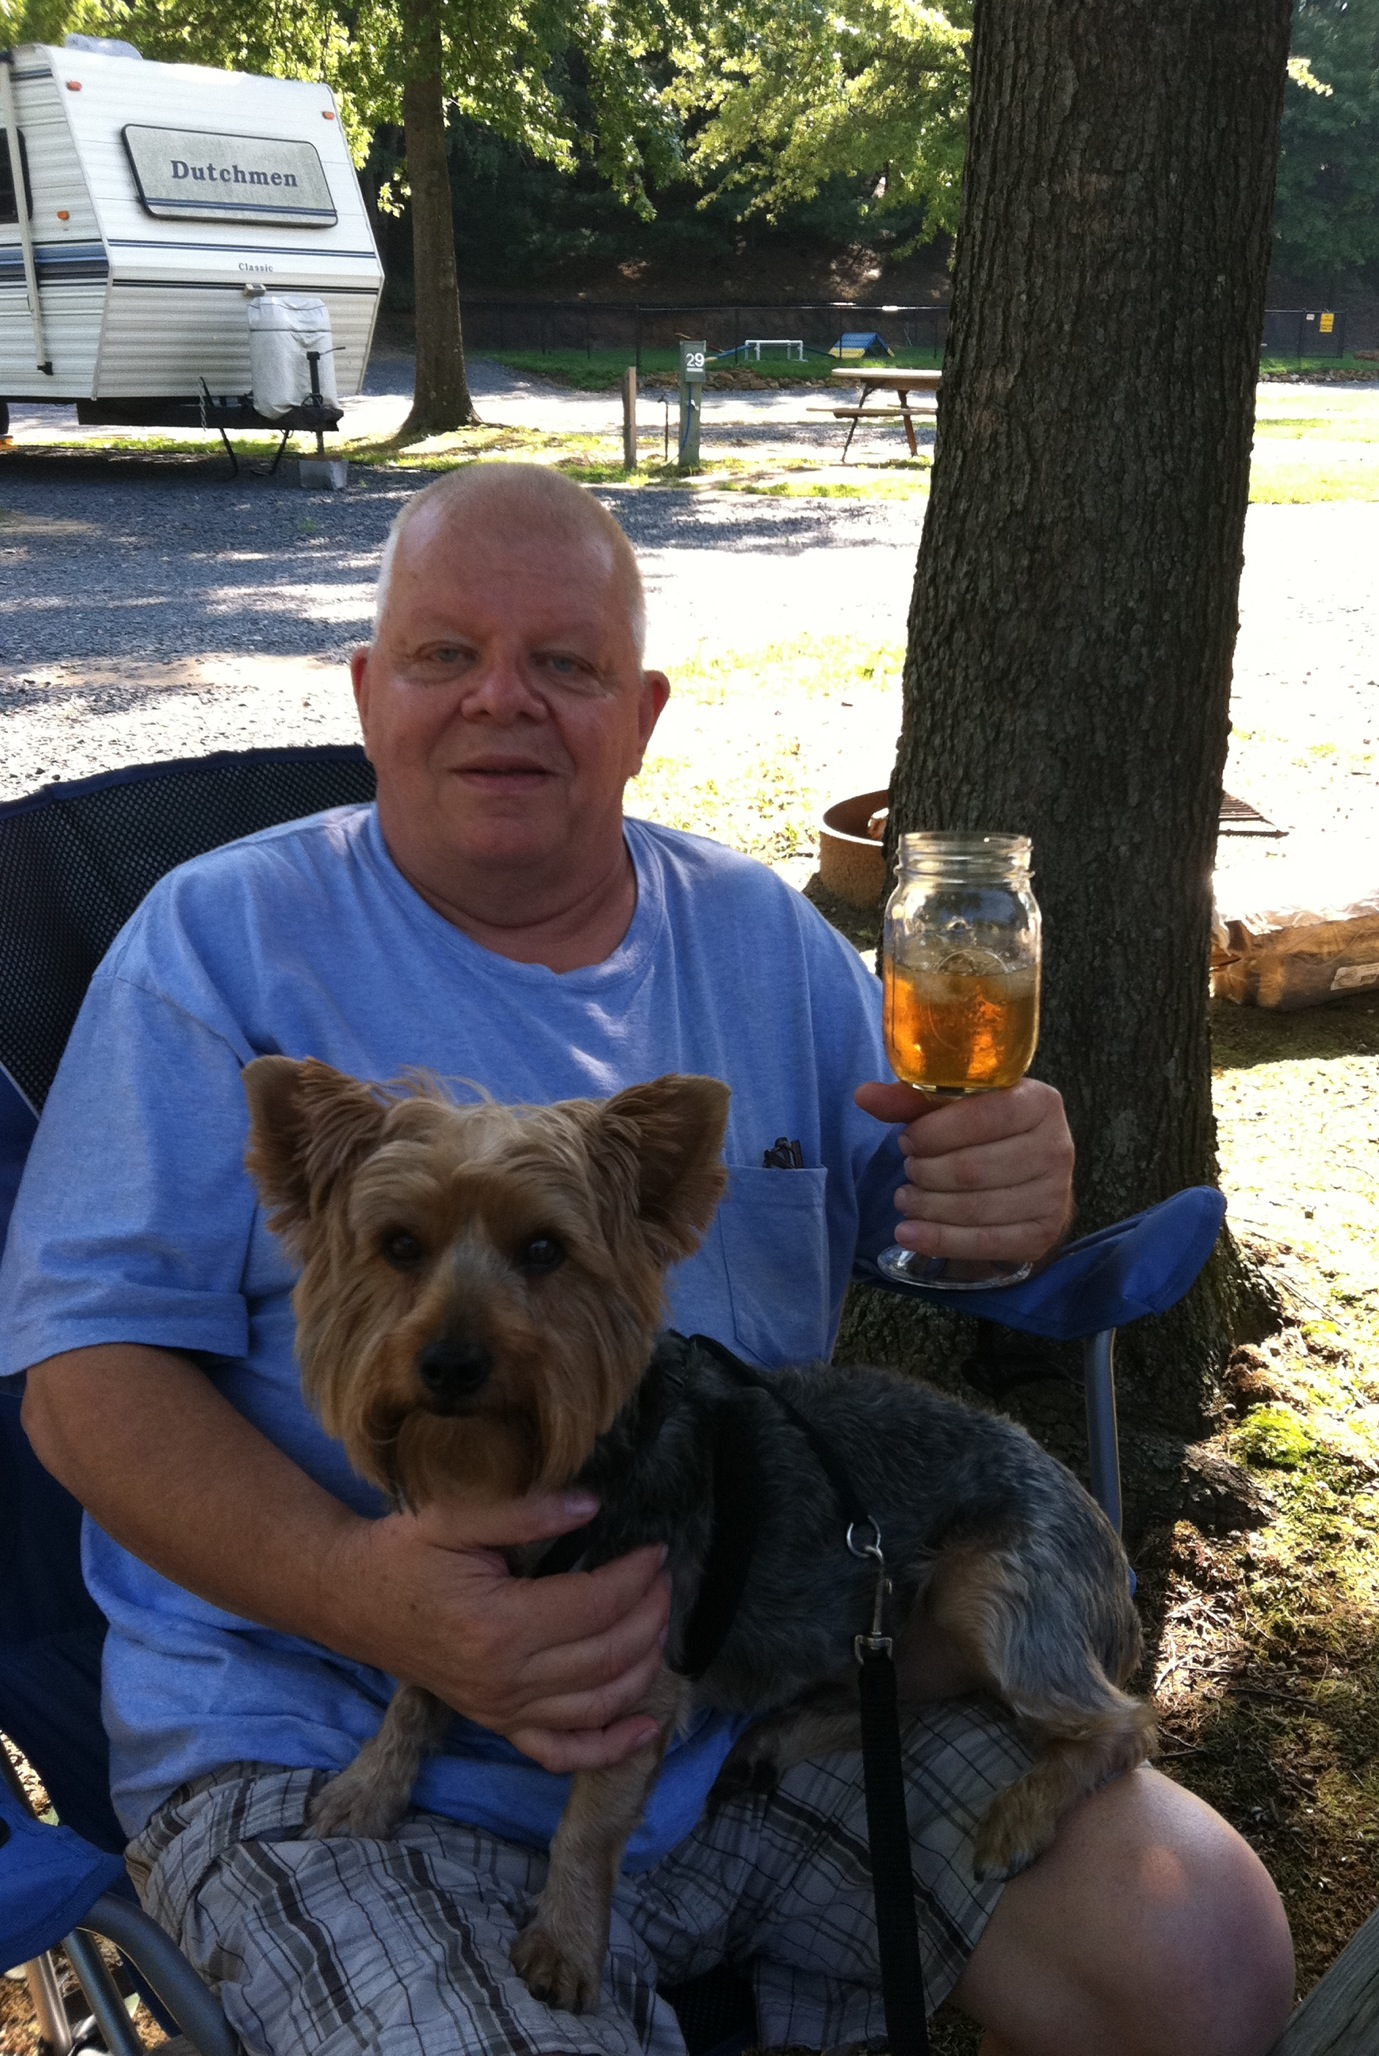 ME AND ARCHIE,AND GLENLIVET